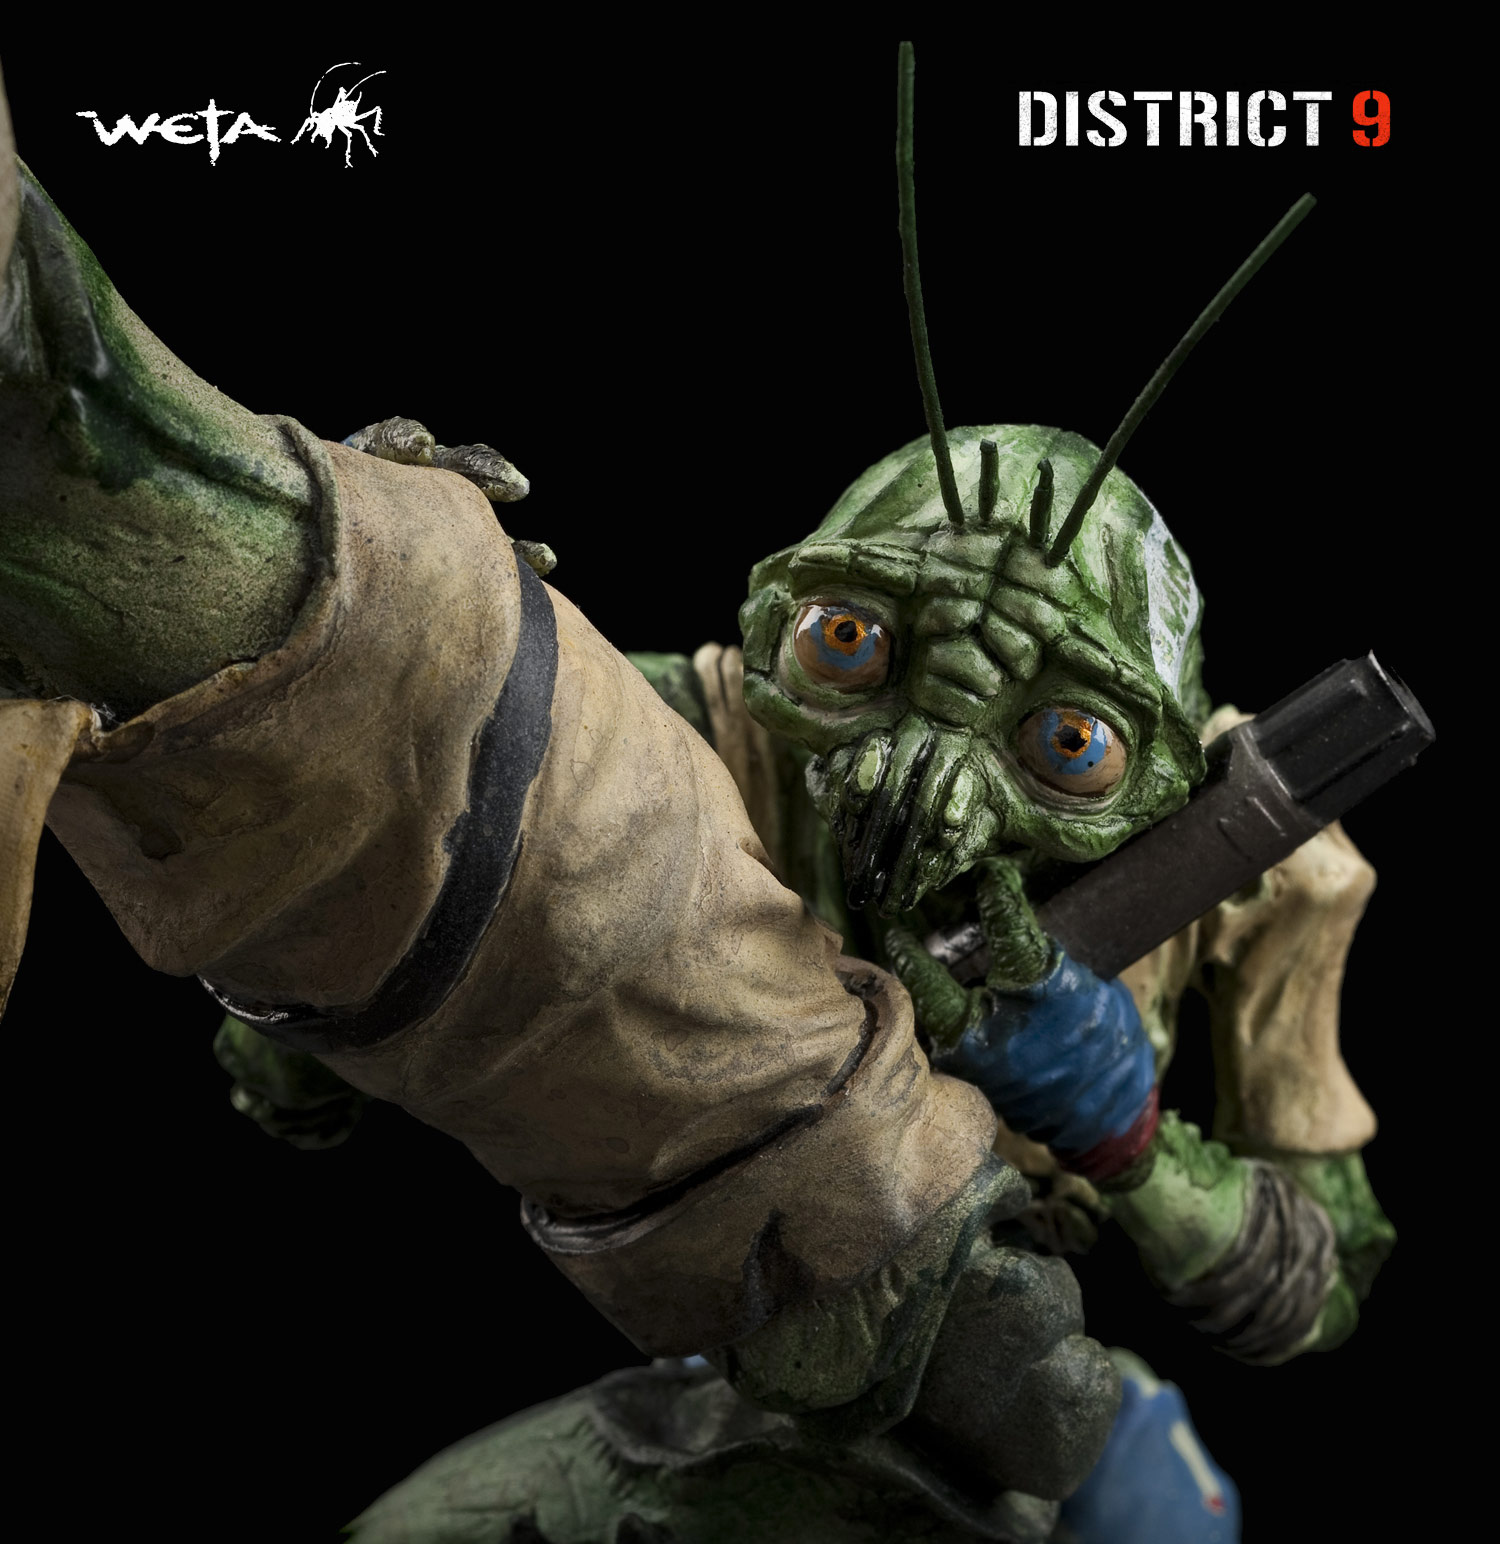 Posted in District 9 (Movie),